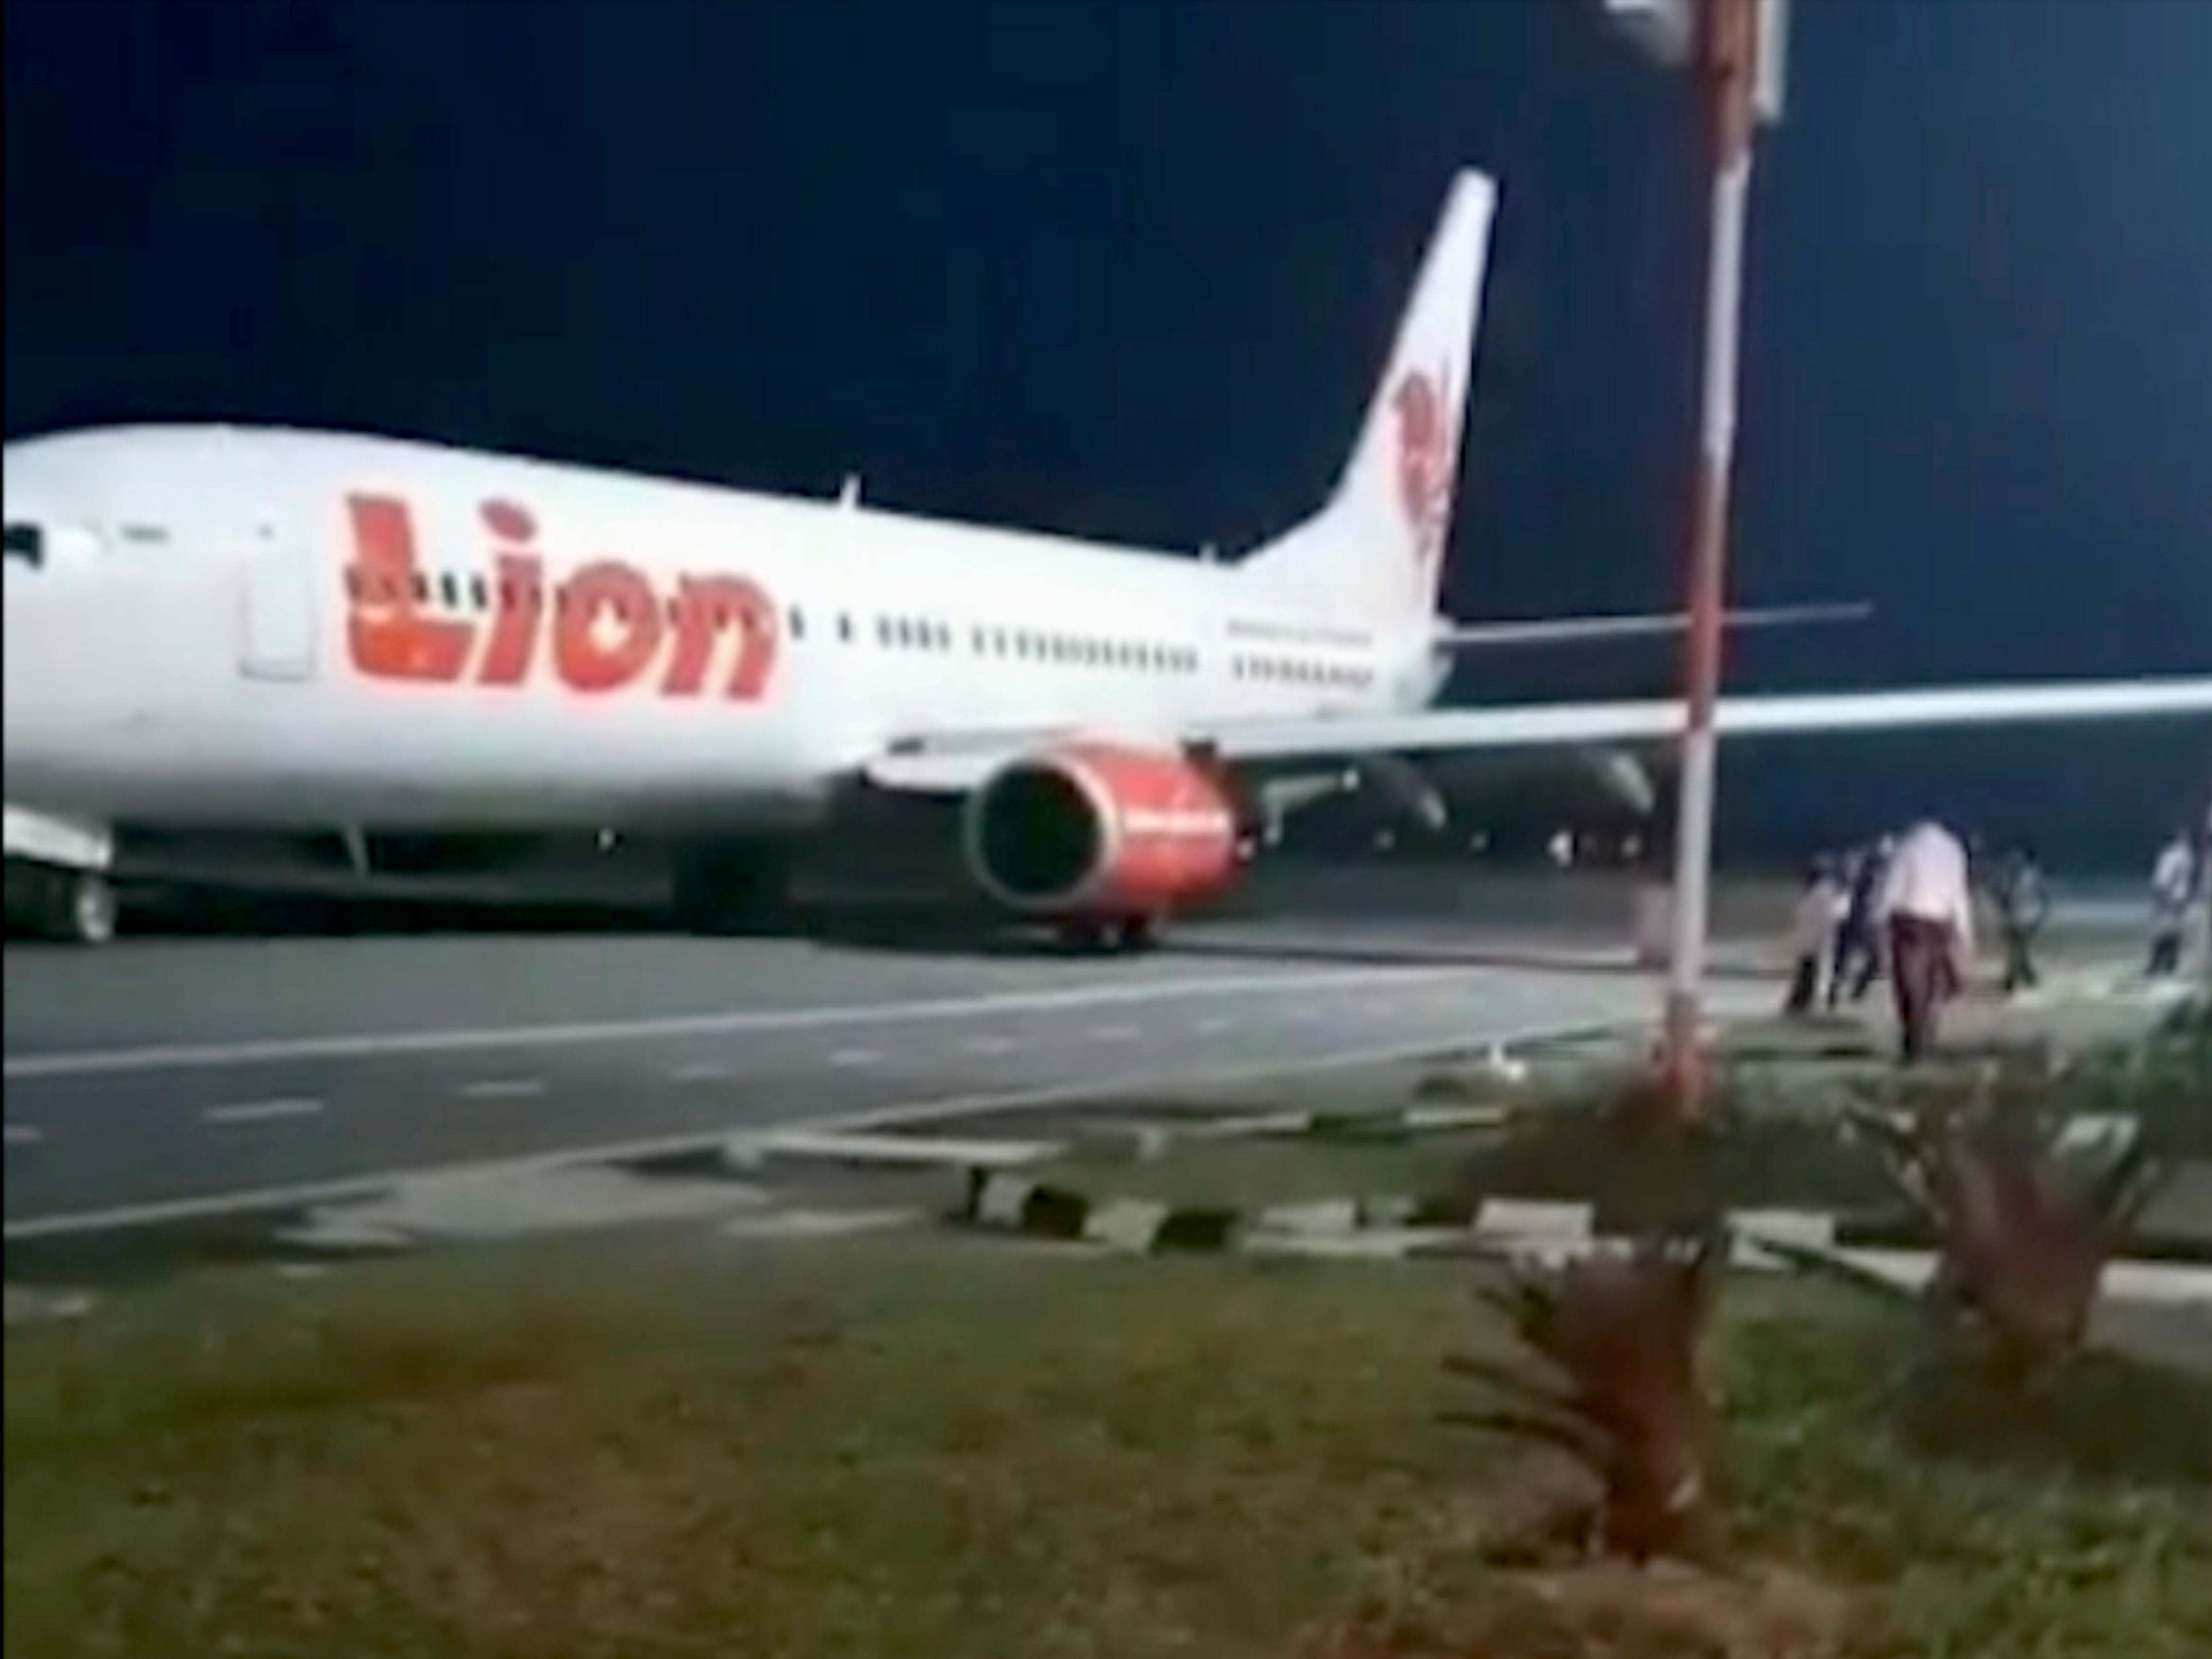 Lion Air plane collides with light pole during takeoff